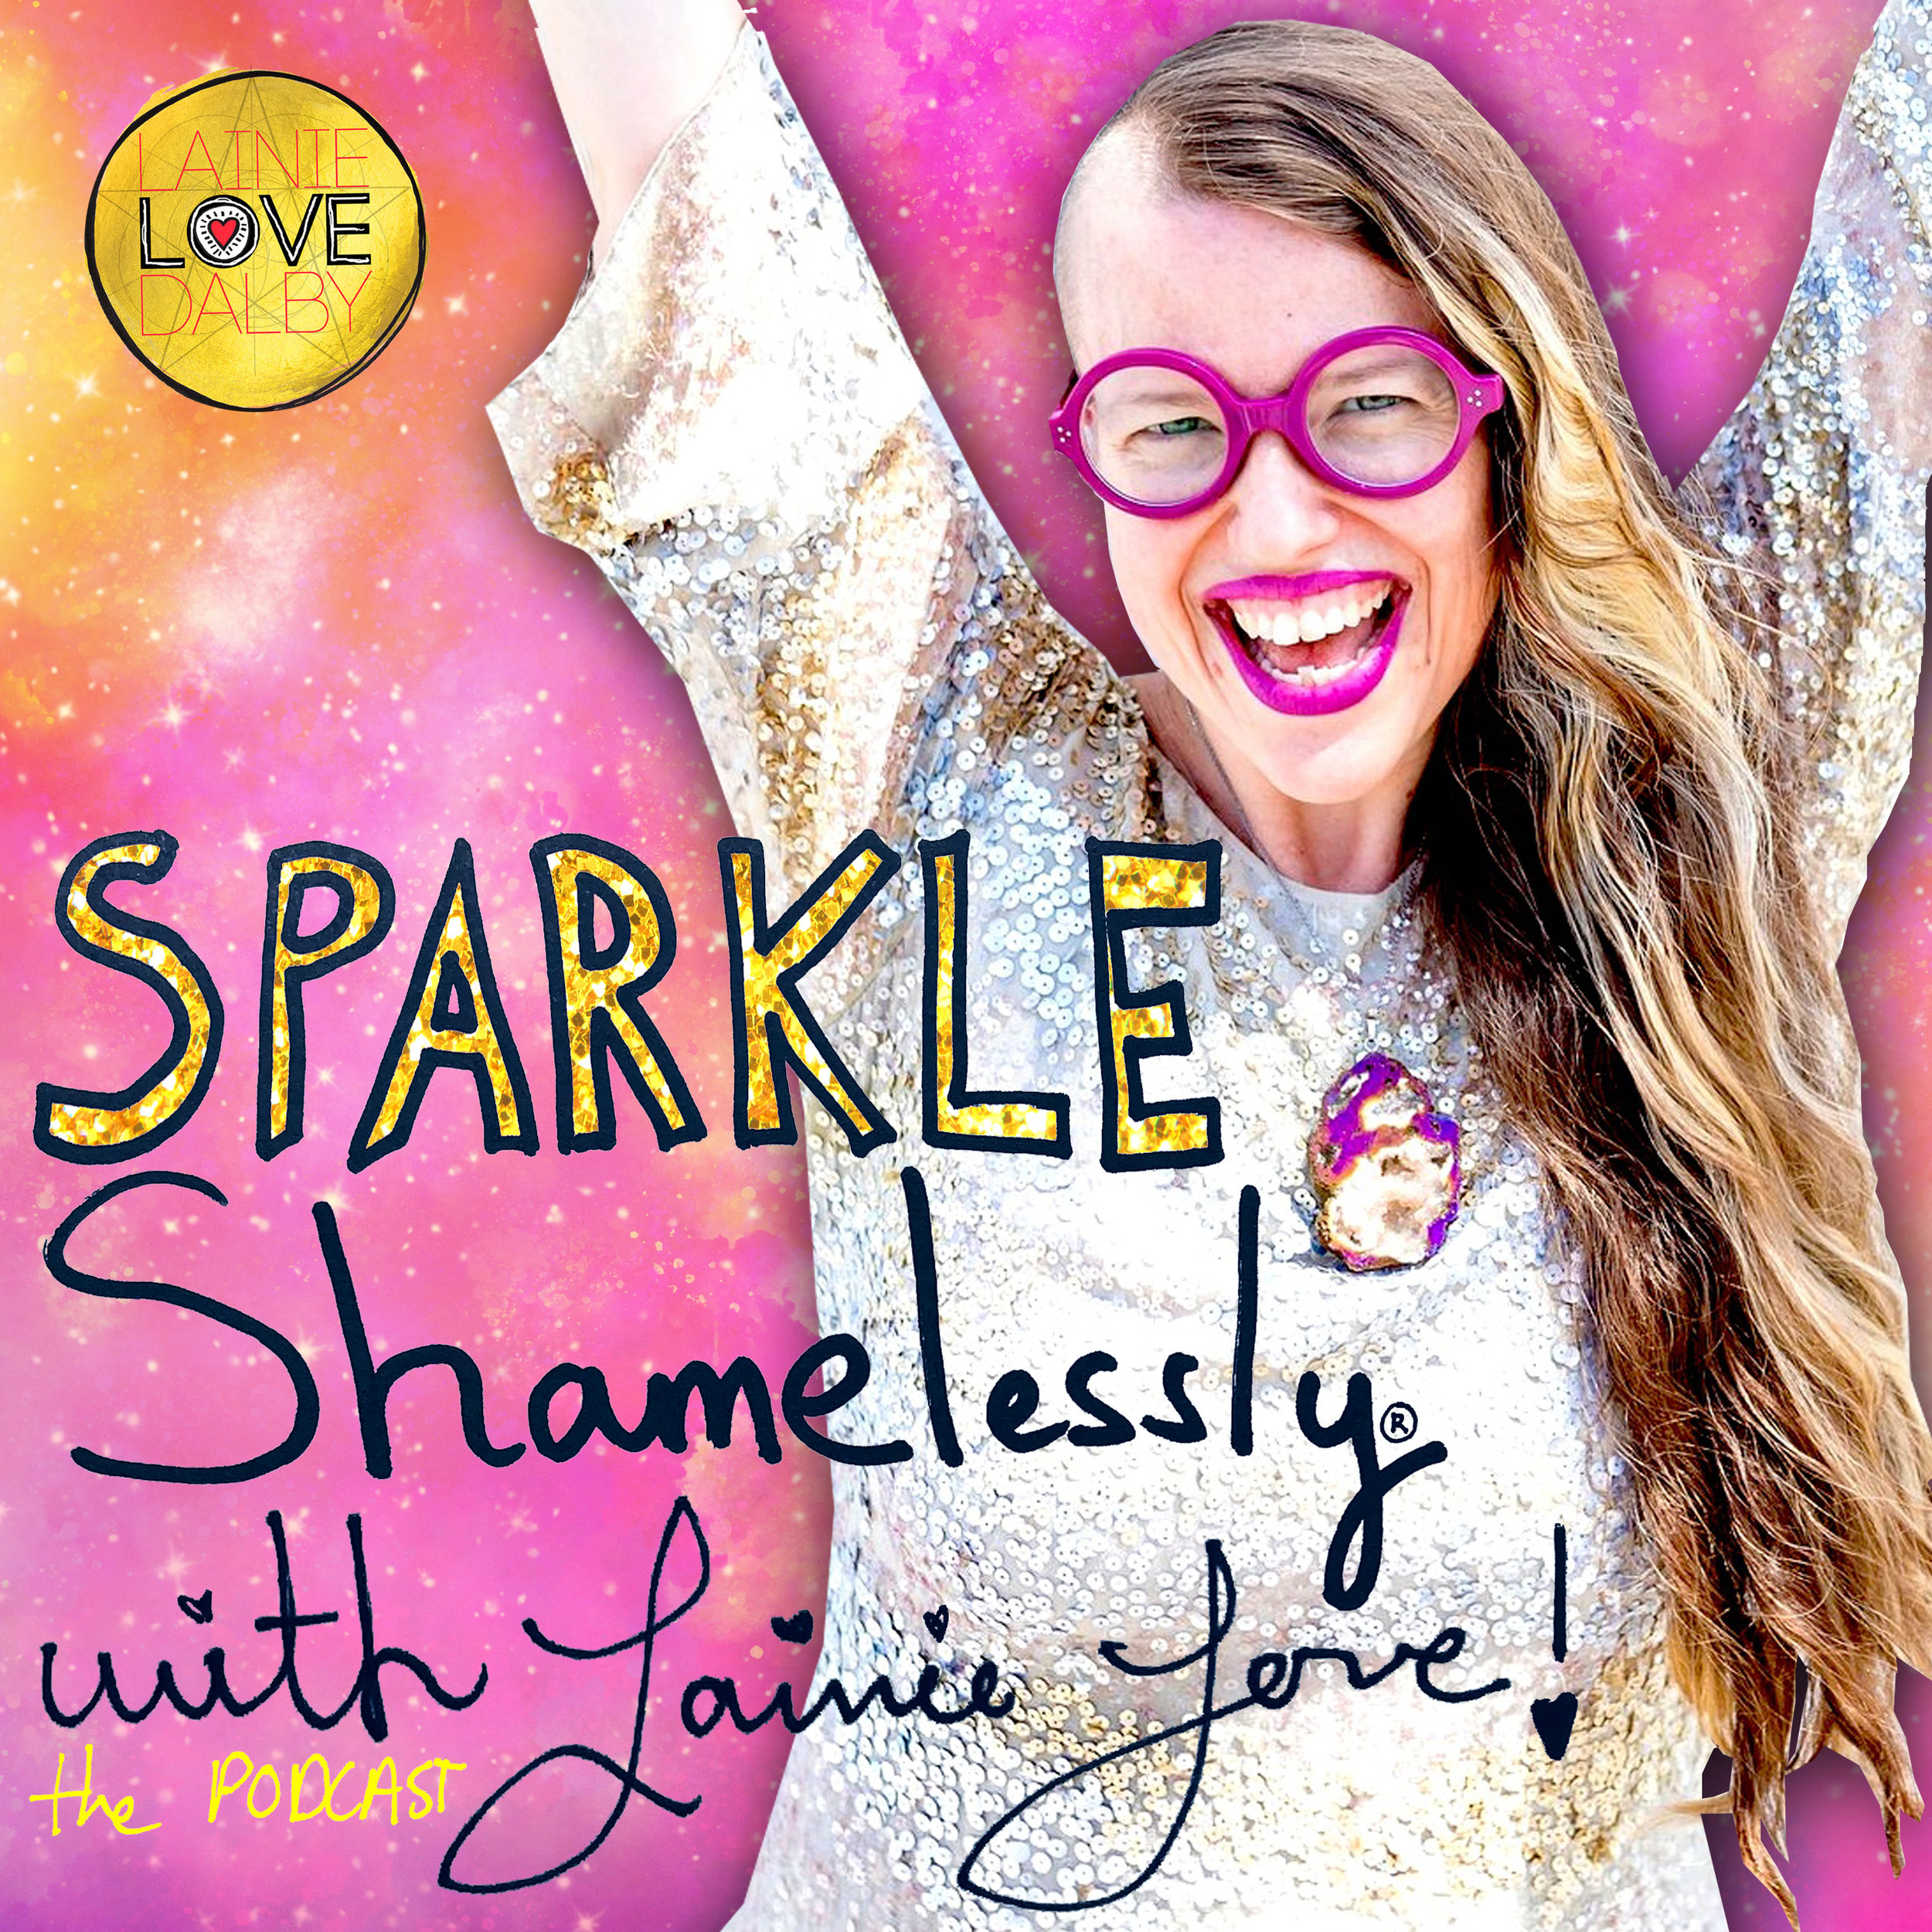 Sparkle Shamelessly with Lainie Love Podcast Cover FINAL (1).jpg